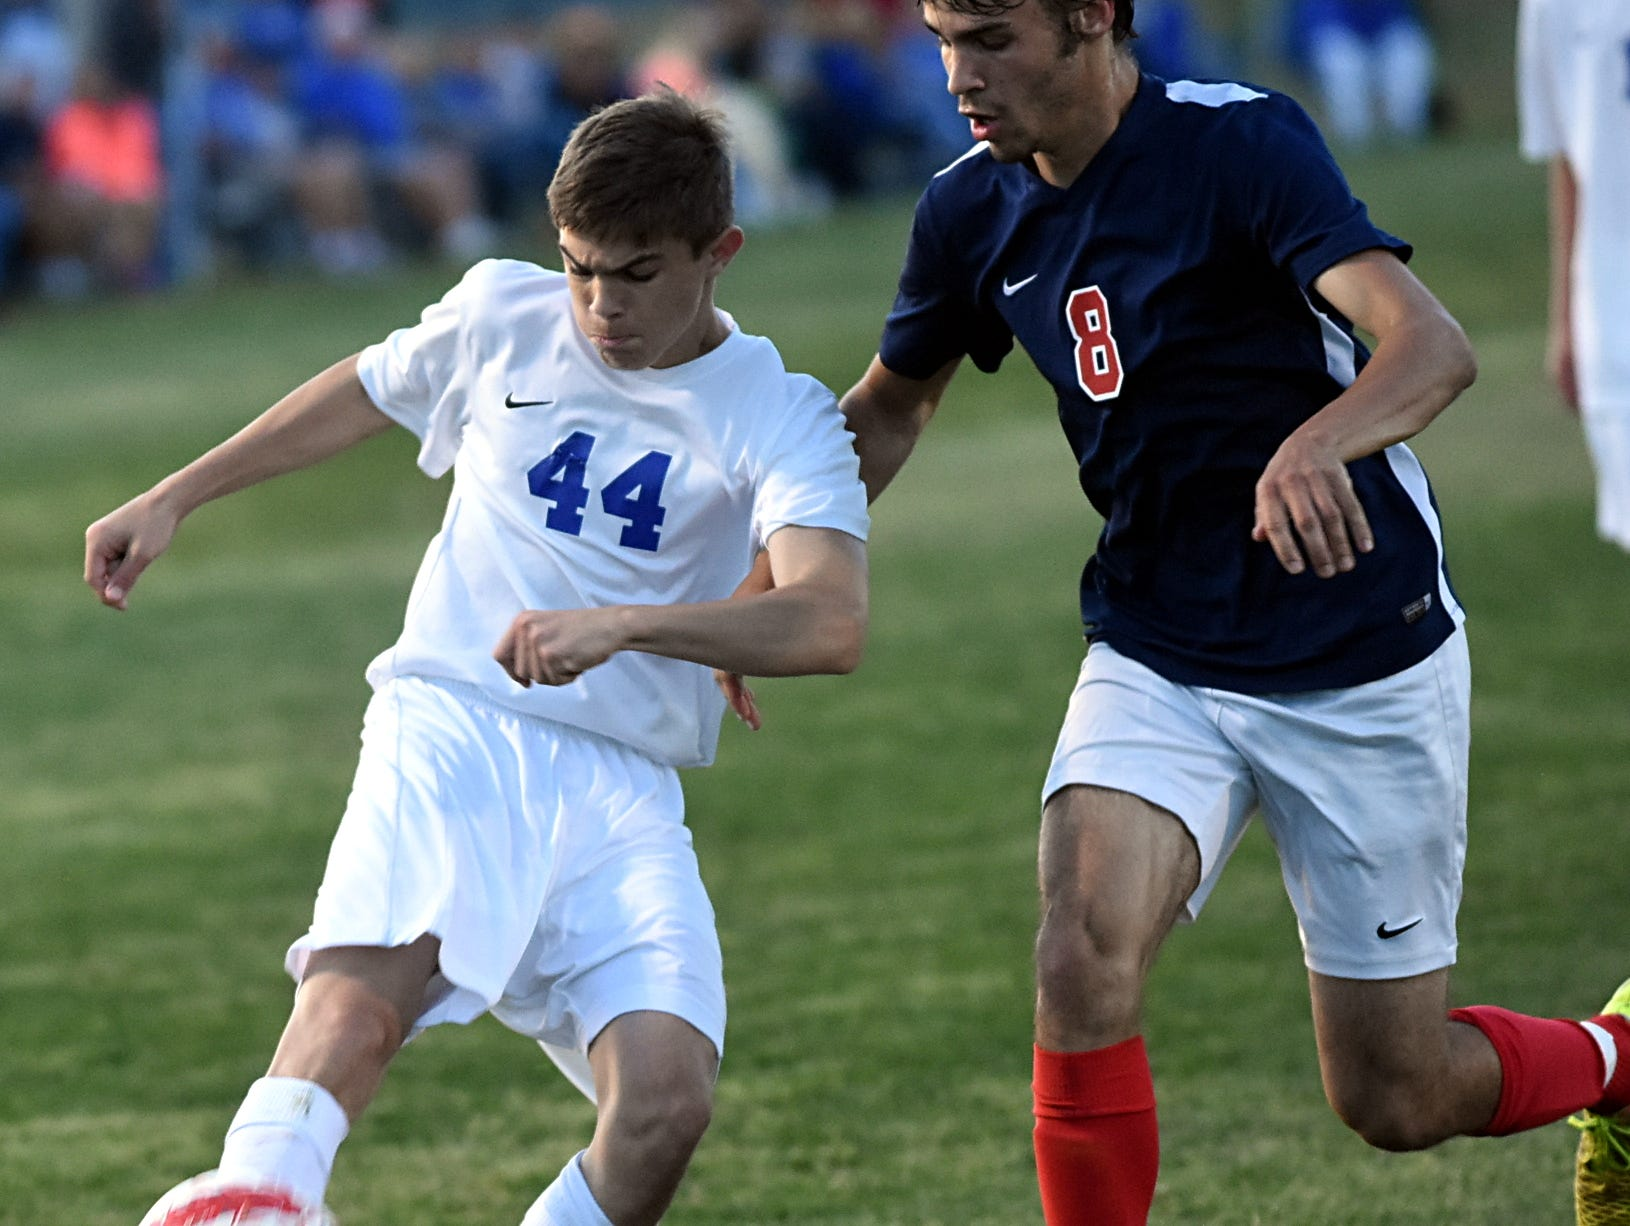 White House High freshman Josh Delaney steps into a first-half shot in front of White House Heritage senior Trent Burian.